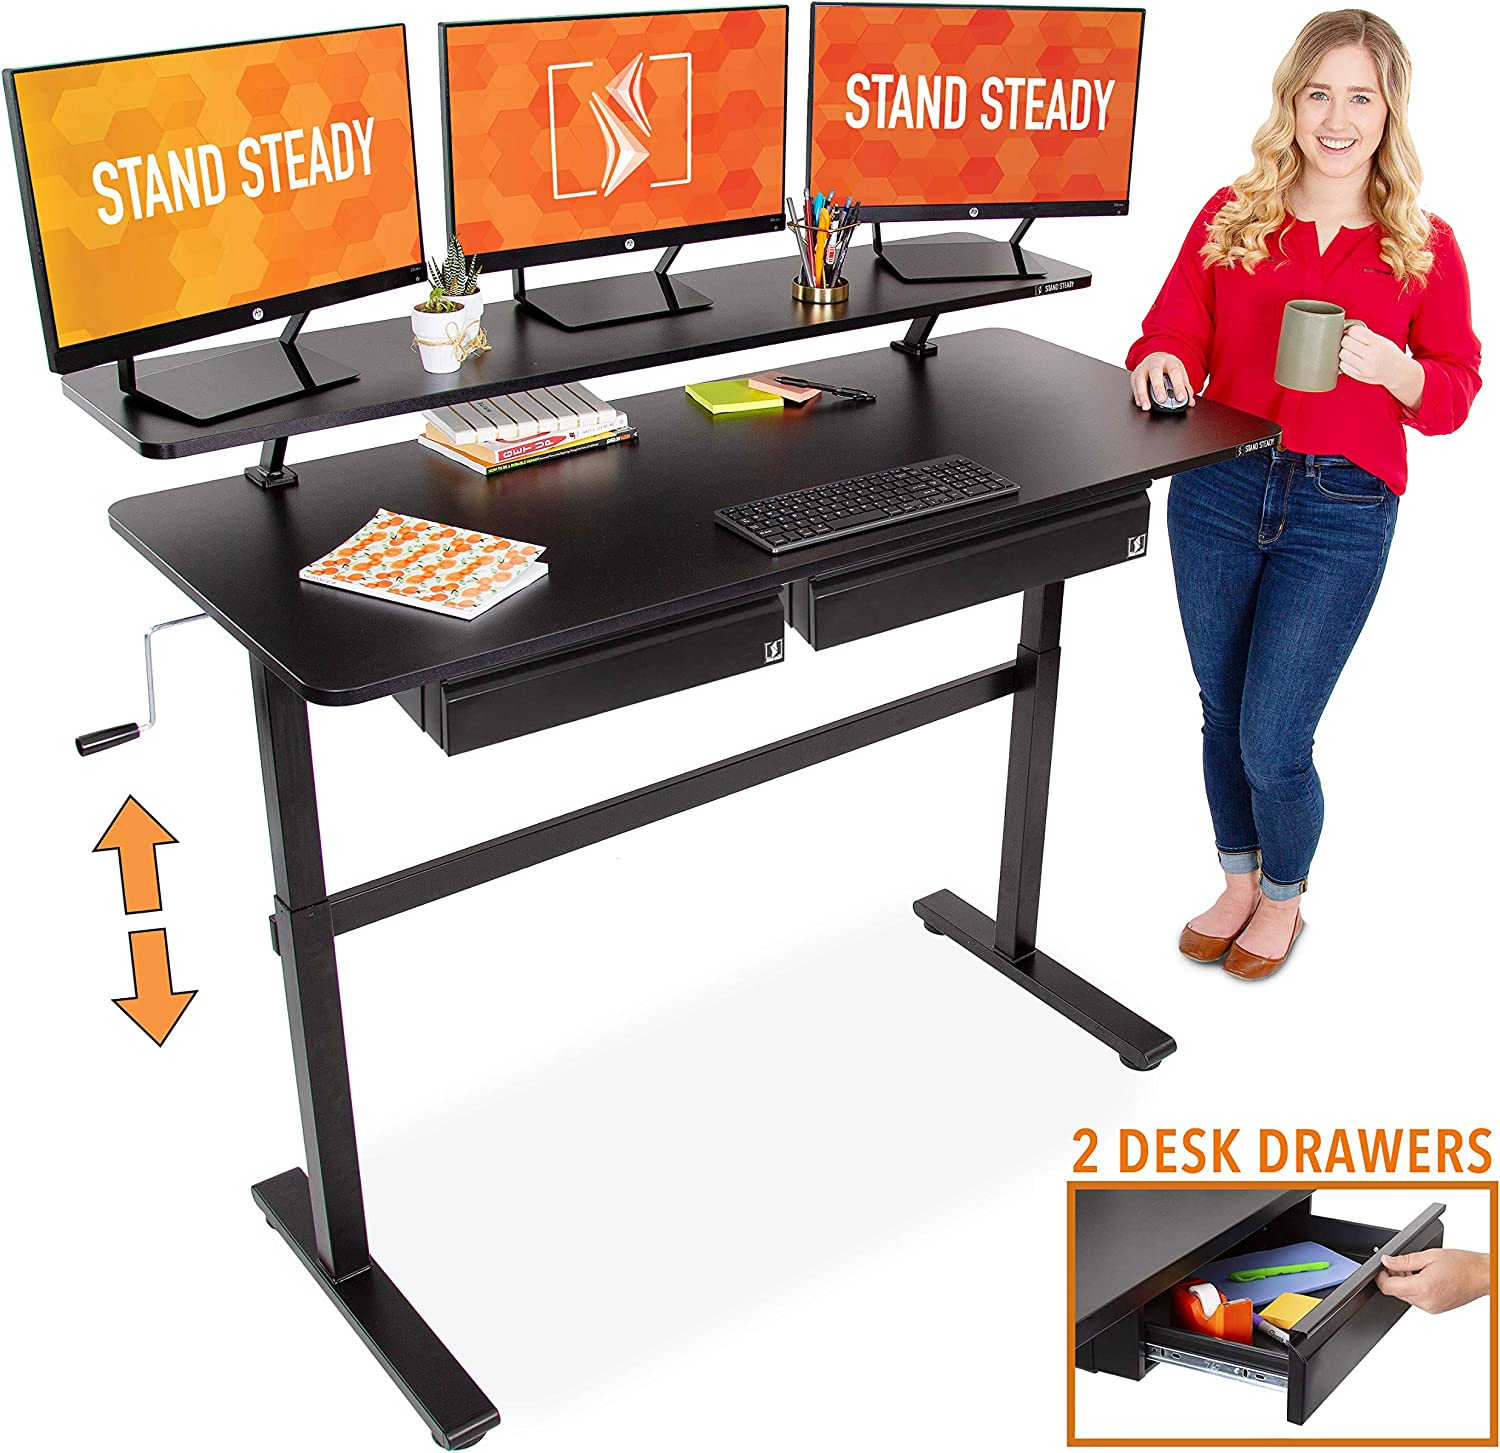 "Stand Steady Tranzendesk 55 Inch Standing Desk with Clamp On Shelf & 2 Under Desk Drawers | Easy Crank Height Adjustable Stand Up Workstation with Attachable Monitor Riser & Extra Storage (55""/Black)"